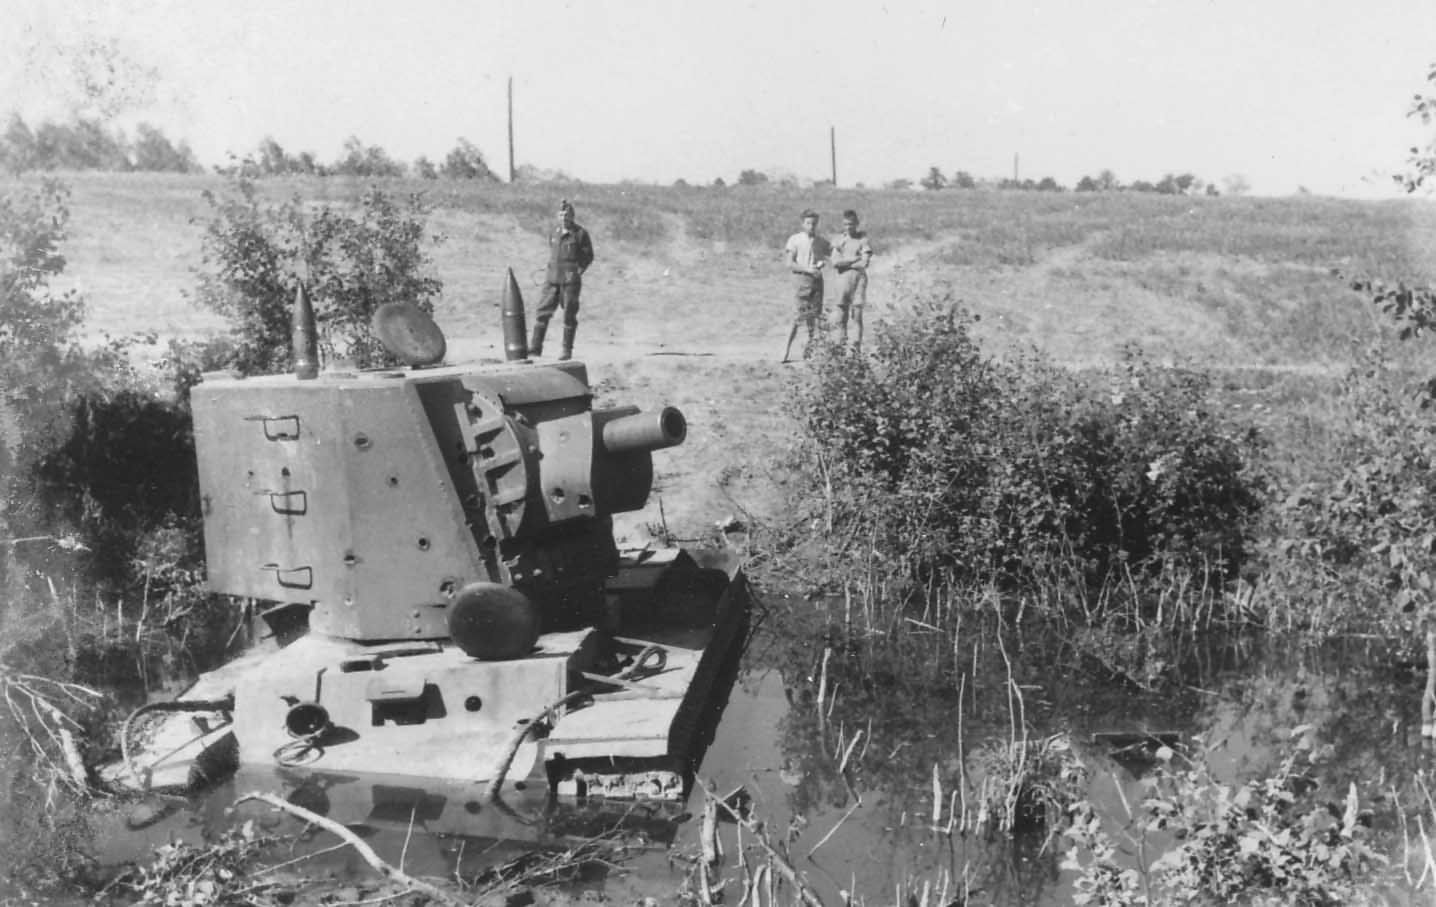 Kv 2 Tank With Mt 1 Turret Stuck In A Muddy River Bed Lithuania